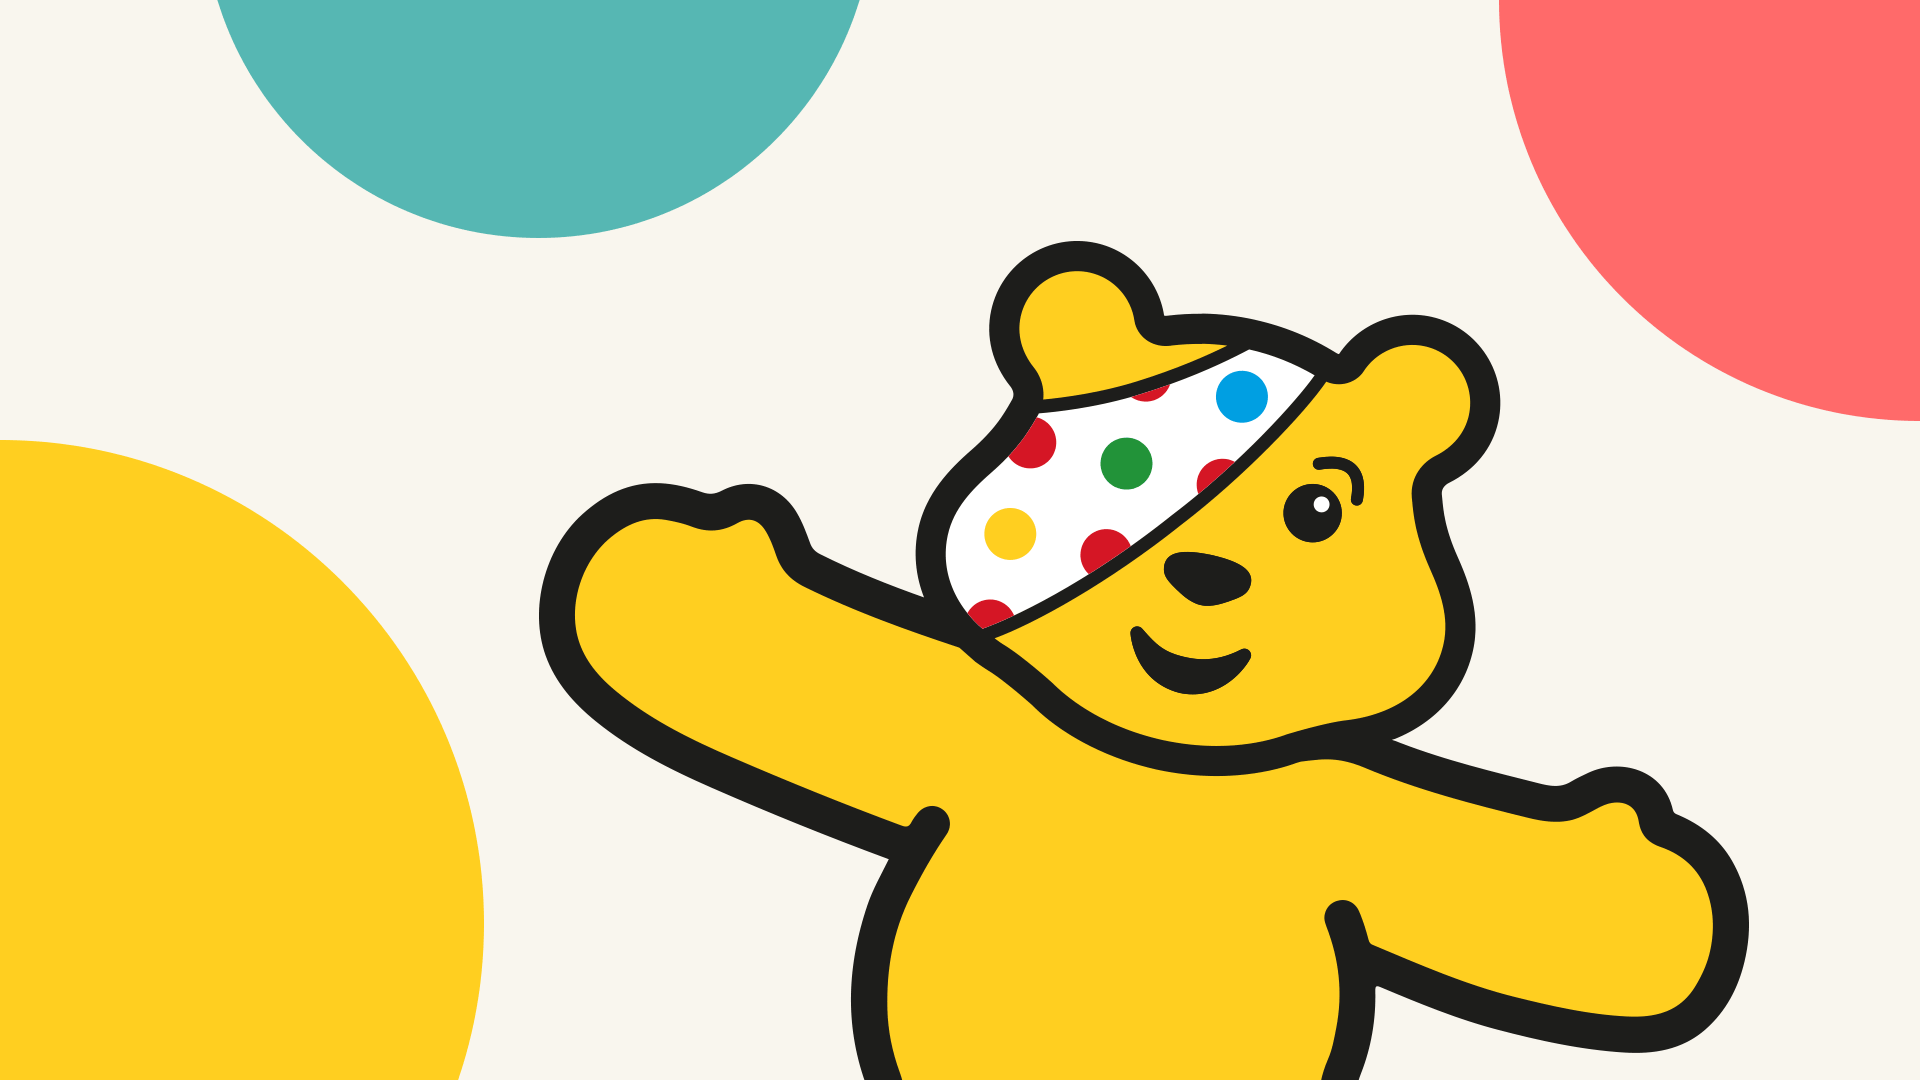 Pudsey against a spotty background.